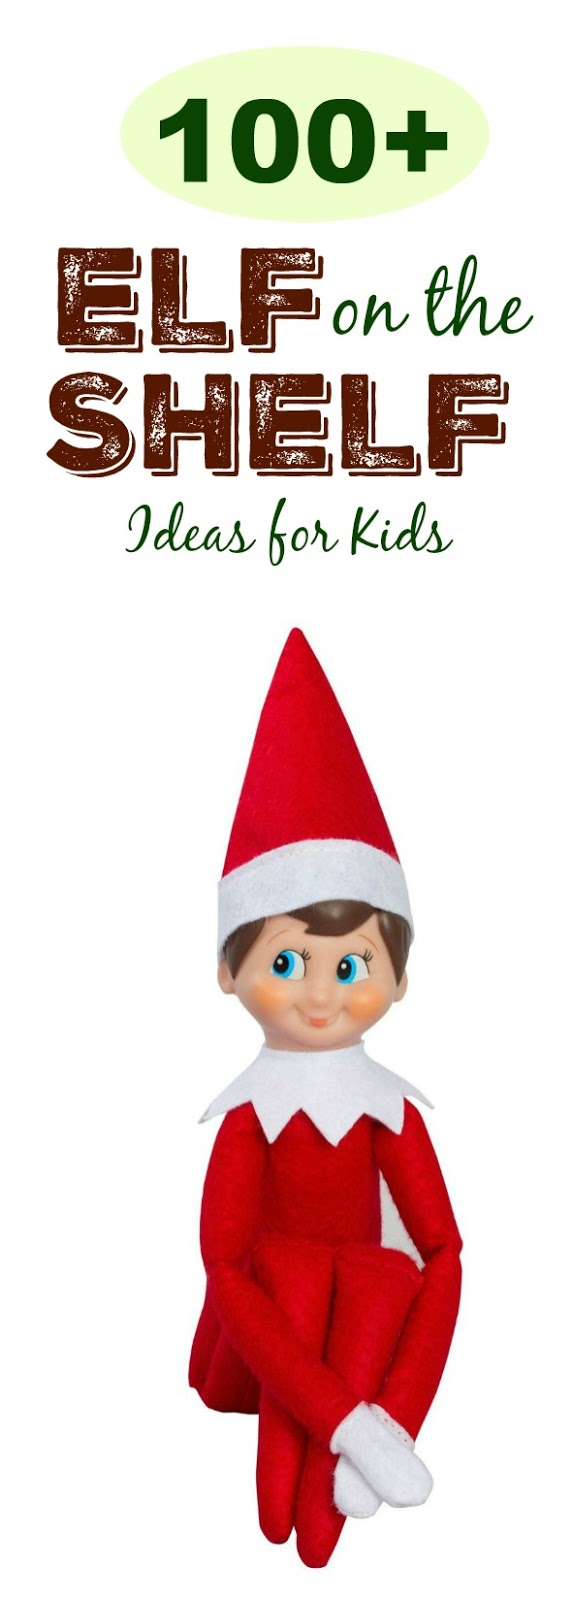 Elf clipart reminder I' THE ON KIDS many